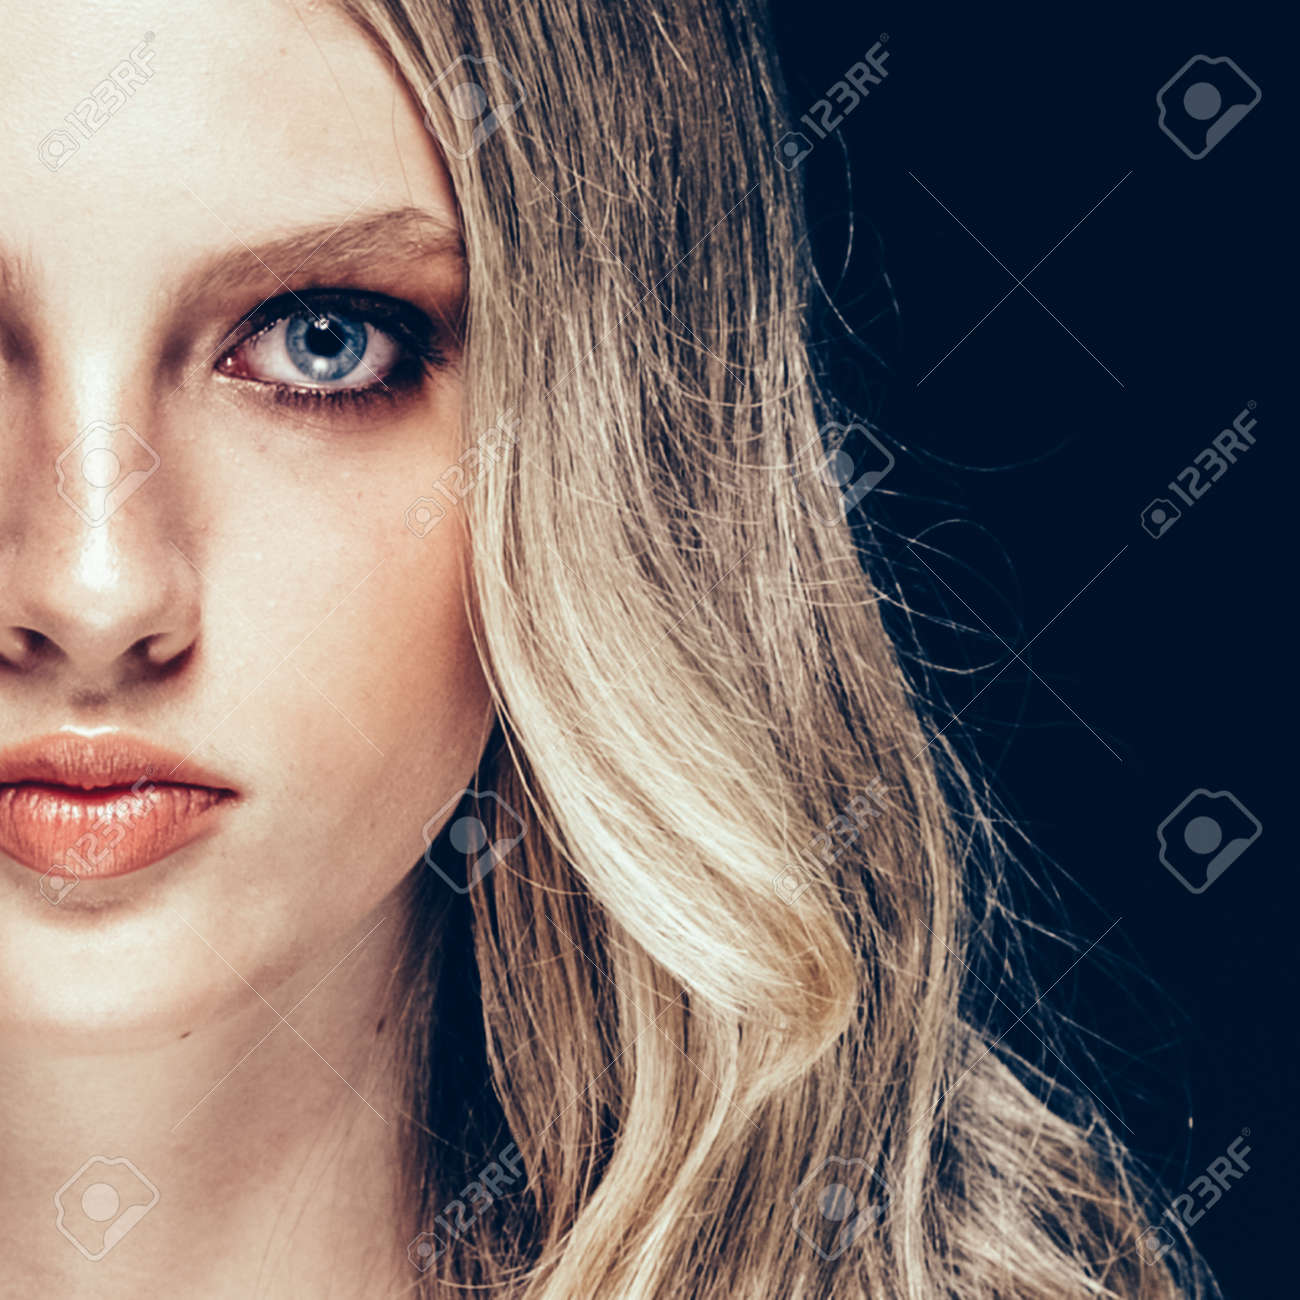 Beautiful Blonde Woman Beauty Model Girl with perfect makeup and hairstyle over black background. - 170272905